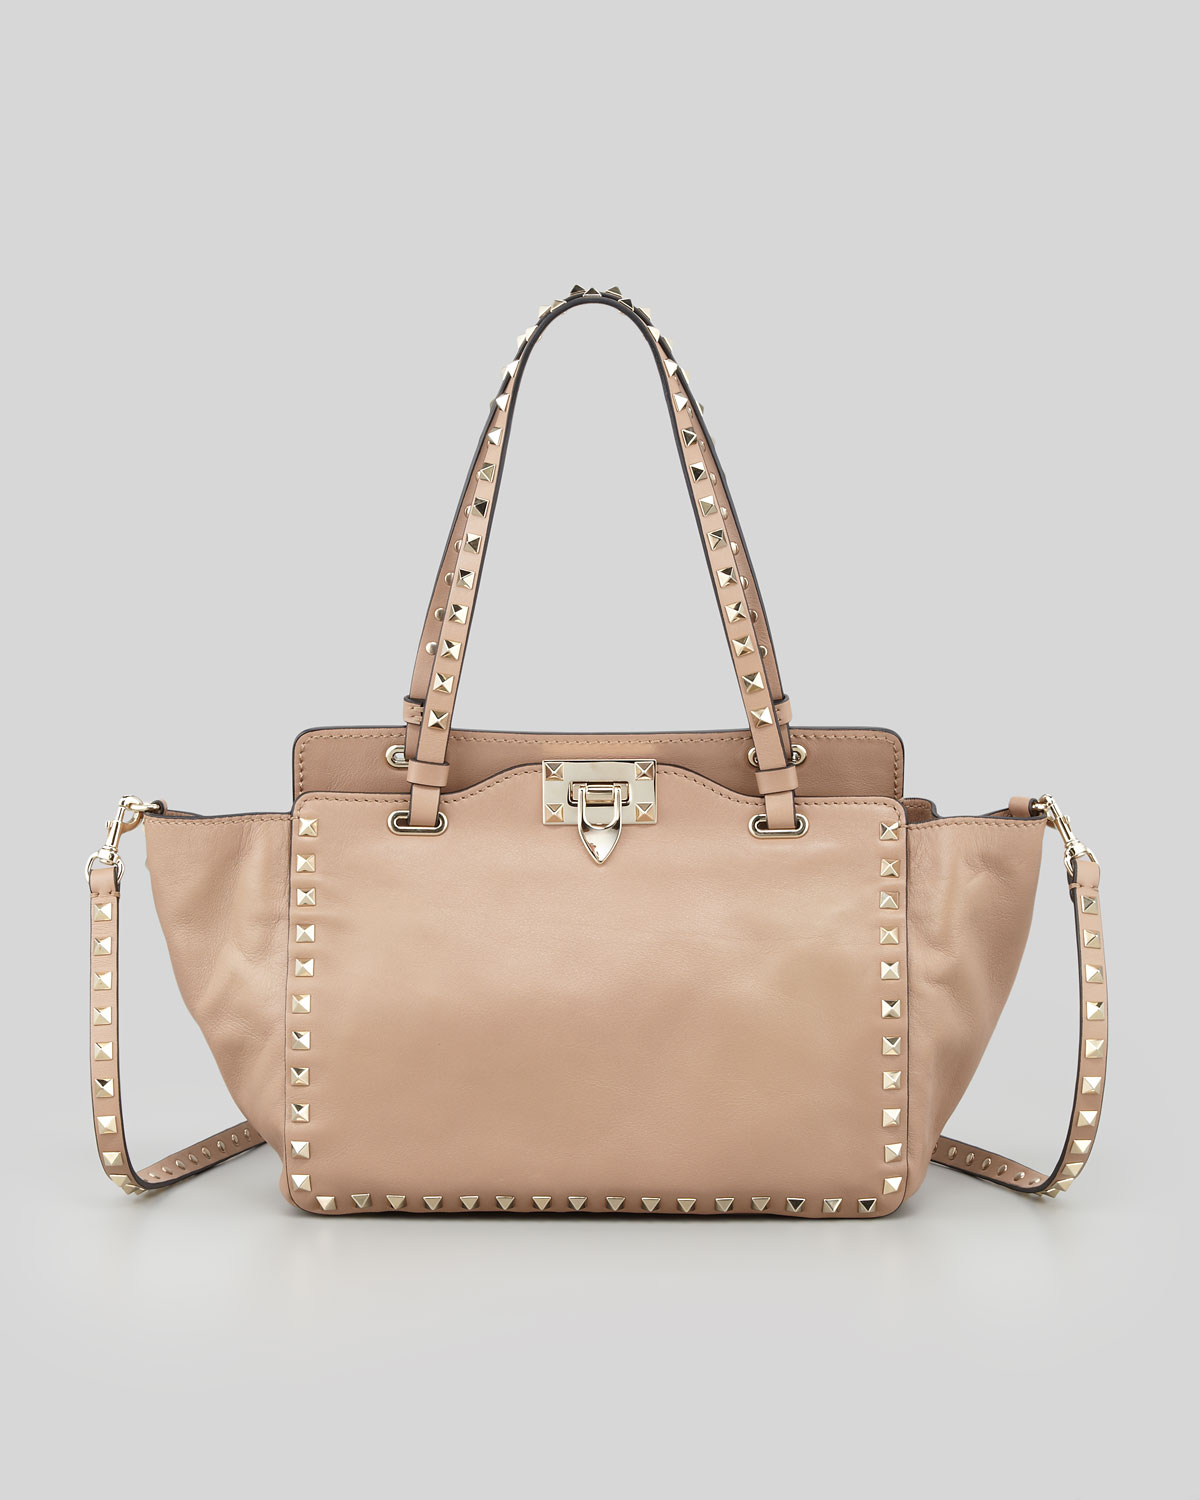 Gallery Previously Sold At Neiman Marcus Women S Valentino Rockstud Bags